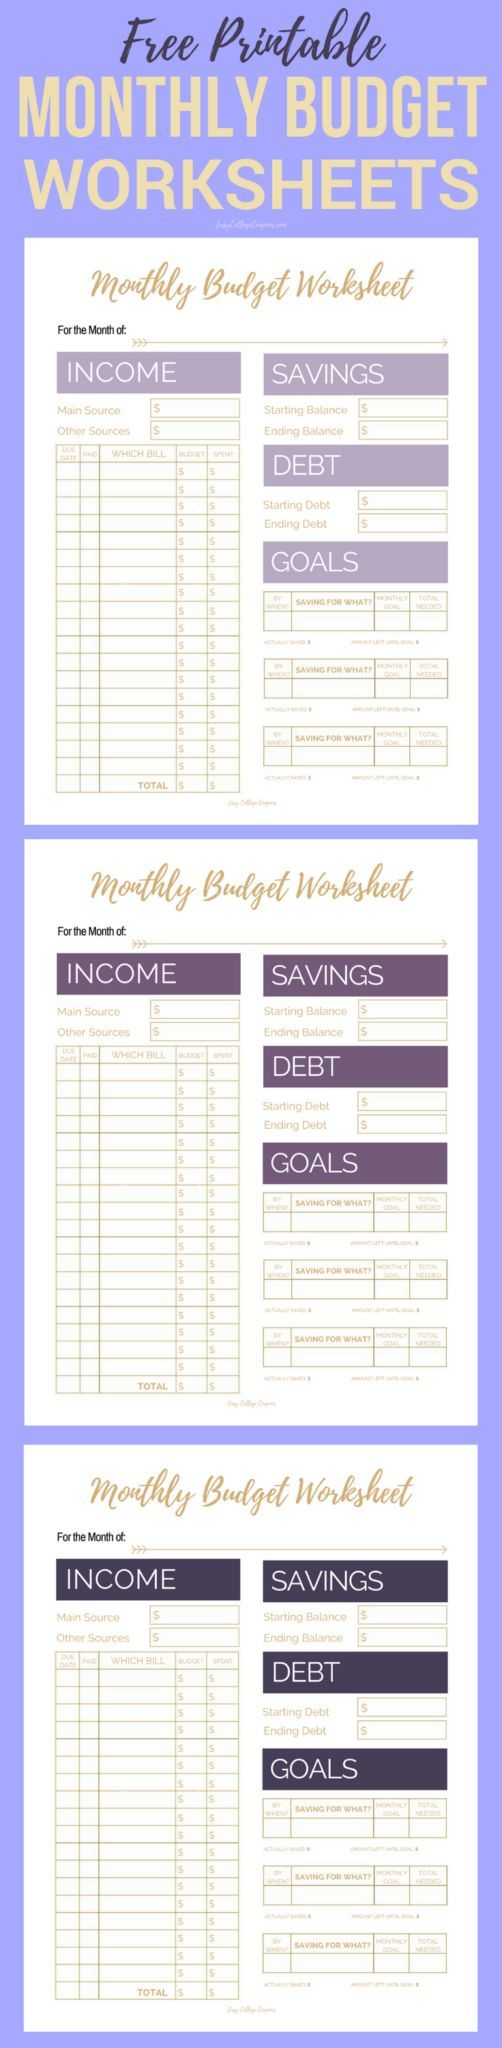 Free Printable Monthly Budget Worksheets  Printable Budget Sheets